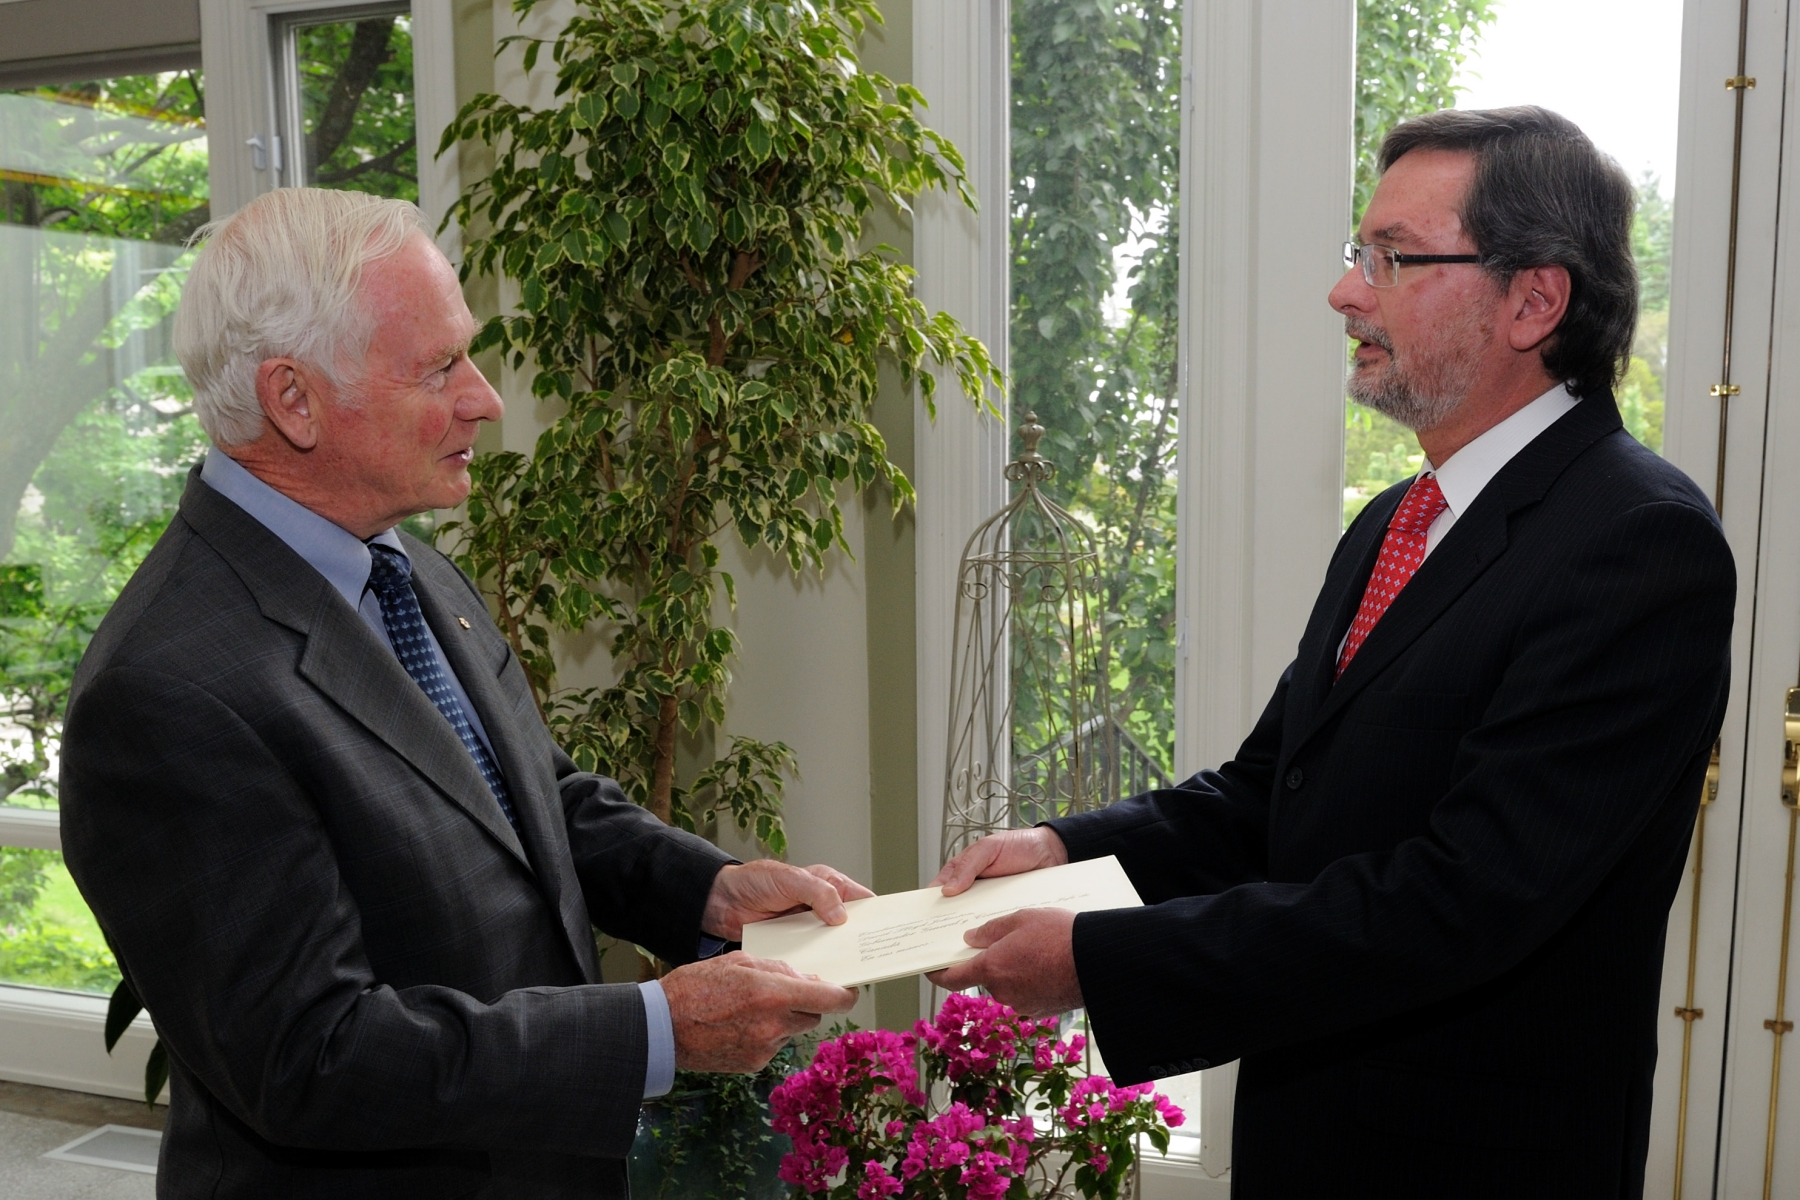 On June 13, 2011, the Governor General received the credentials of His Excellency Andrés Terán Parral, Ambassador of the Republic of Ecuador, during a private ceremony at Rideau Hall.